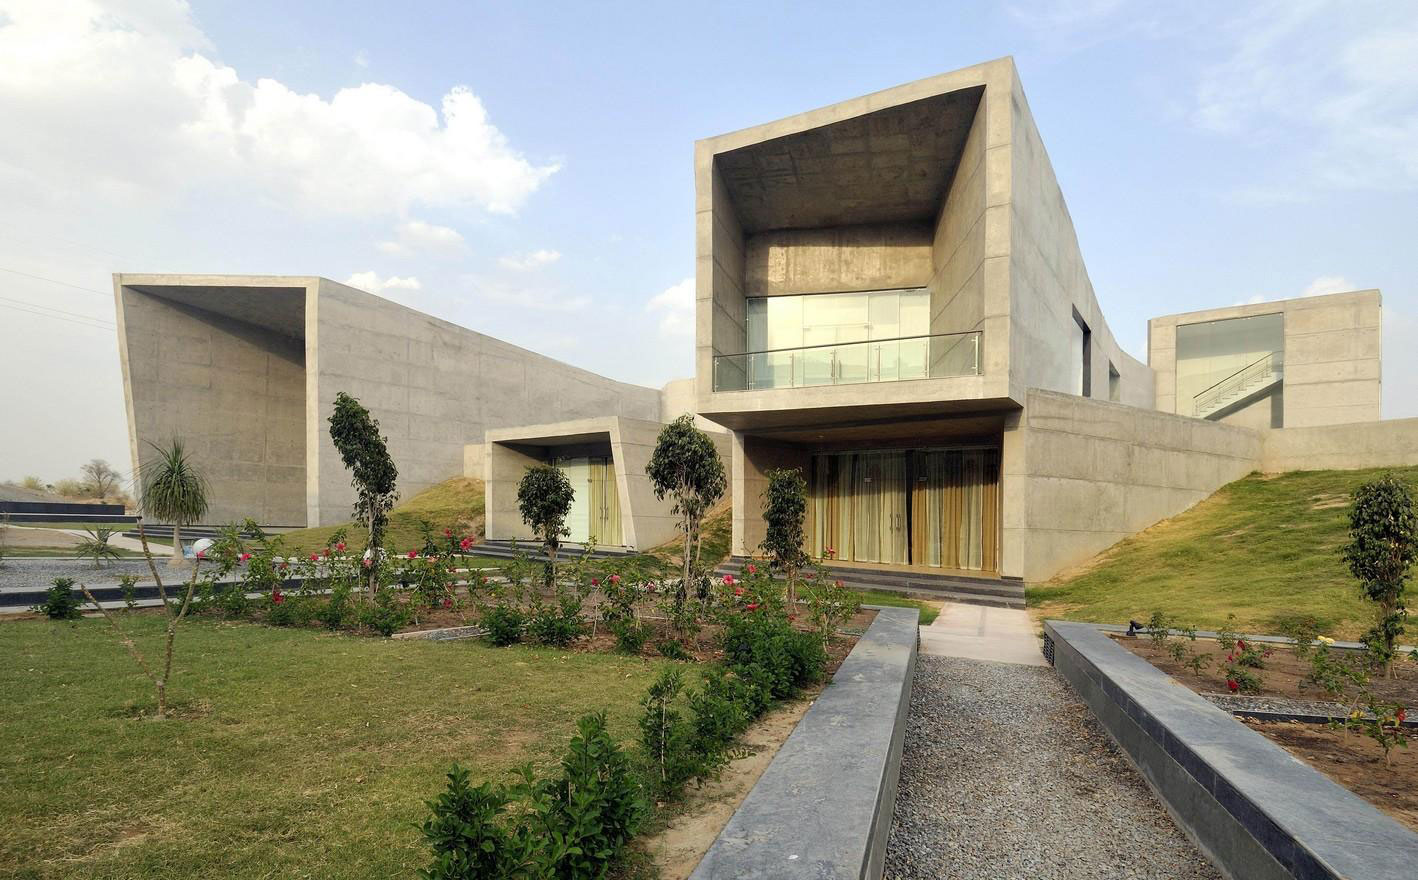 The Courtyard House by Sajay Puri Architects (4)